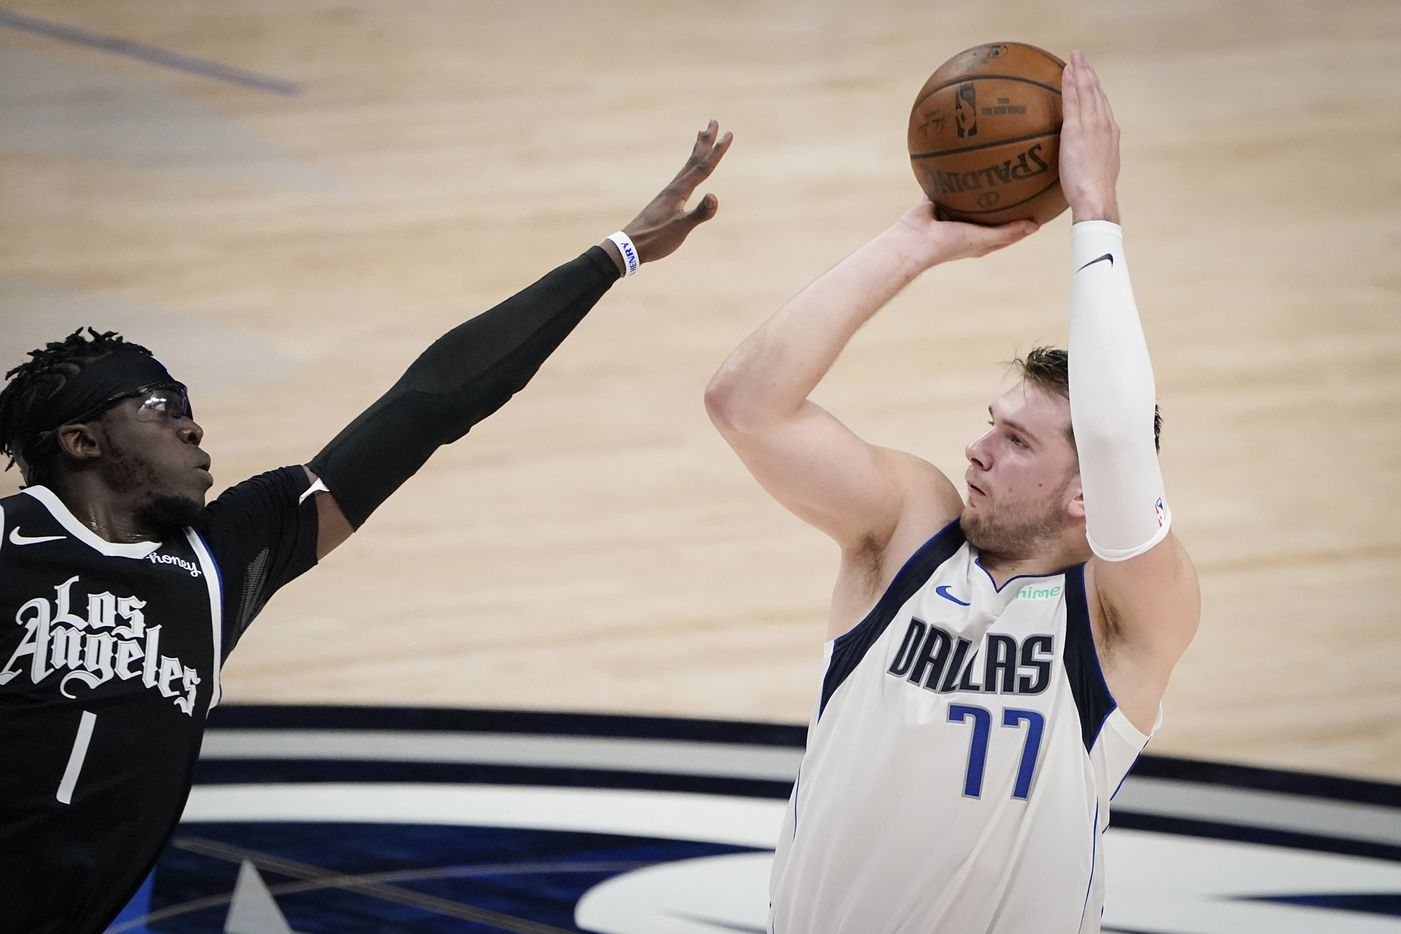 Dallas Mavericks guard Luka Doncic (77) shoots over LA Clippers guard Reggie Jackson (1) during the second quarter of an NBA playoff basketball game at American Airlines Center on Sunday, May 30, 2021, in Dallas.